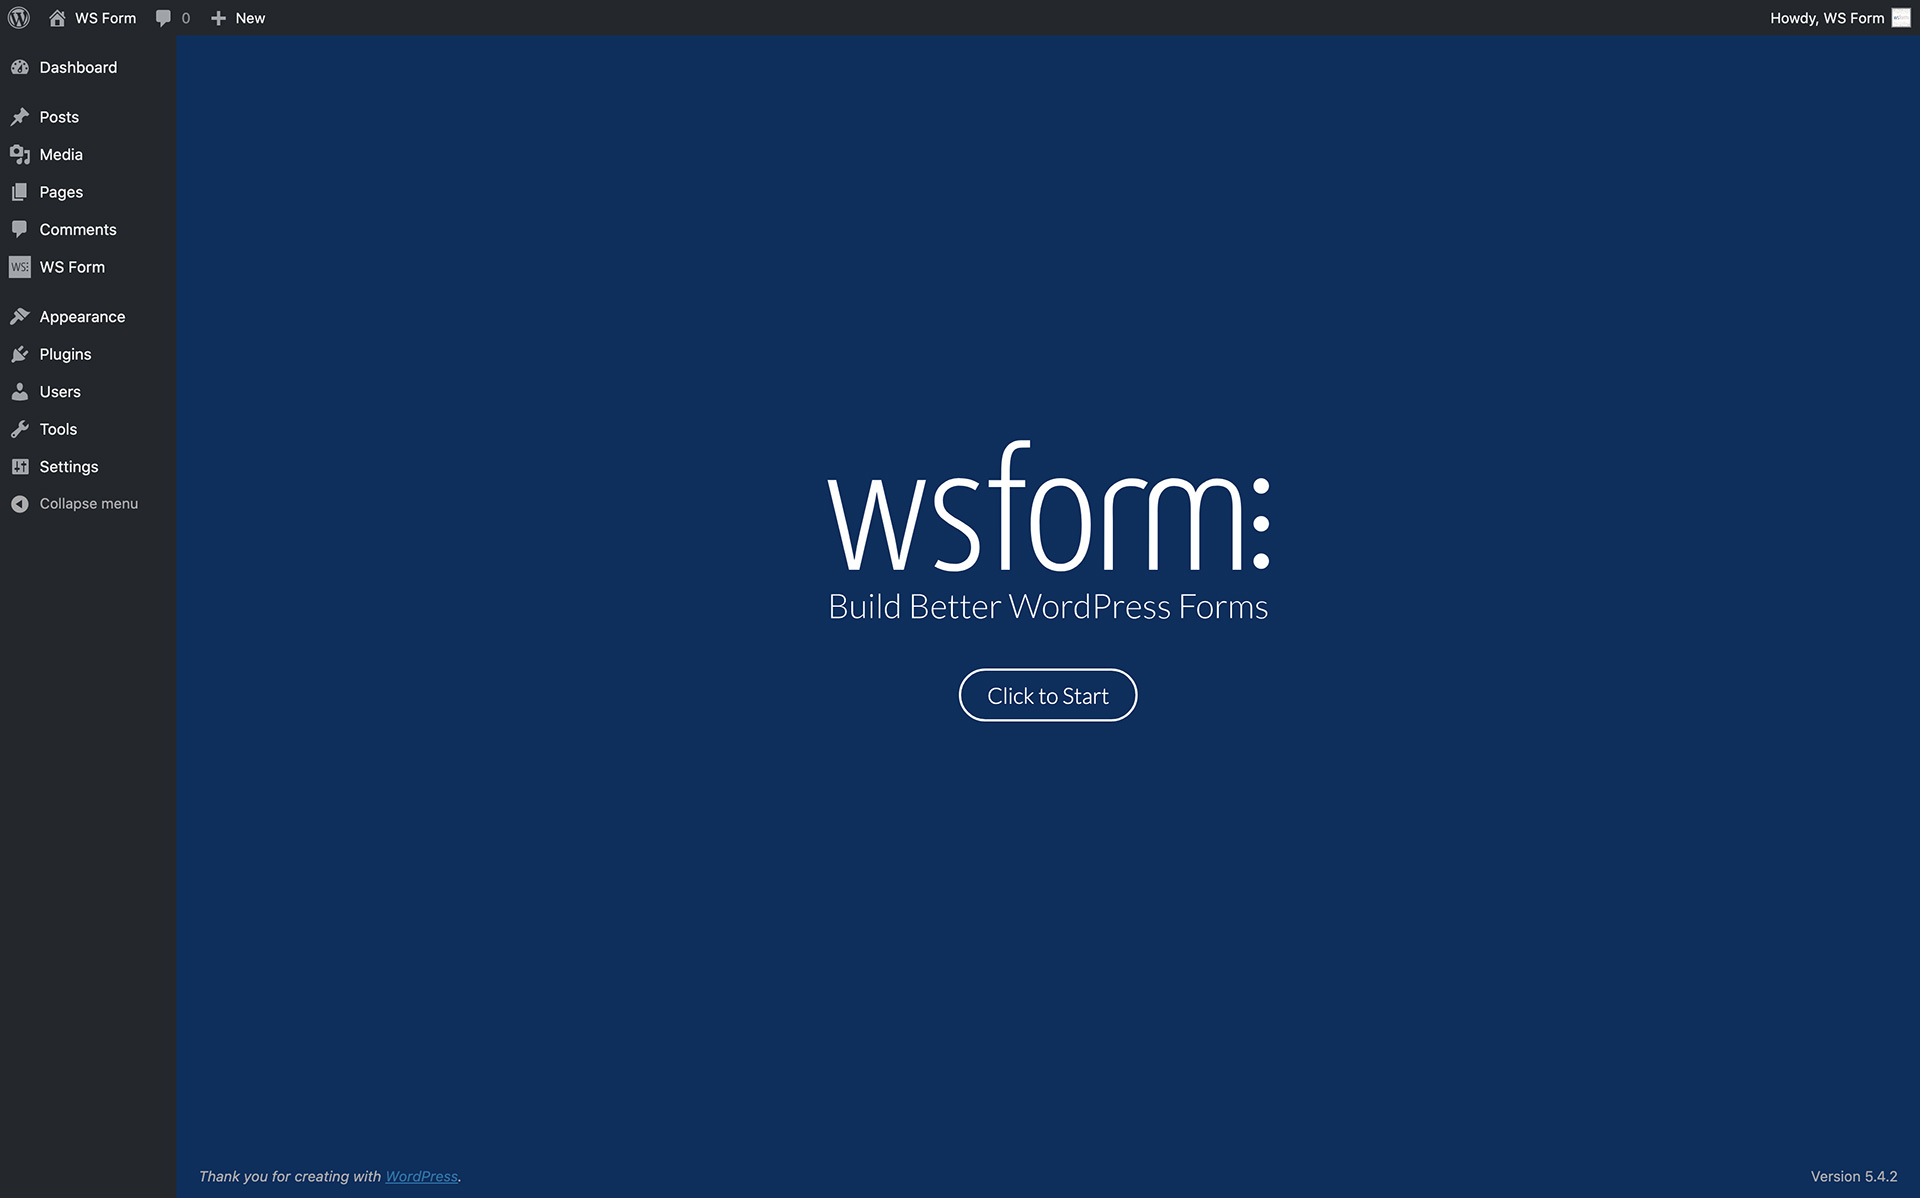 WS Form – Build Better WordPress Forms – WordPress plugin